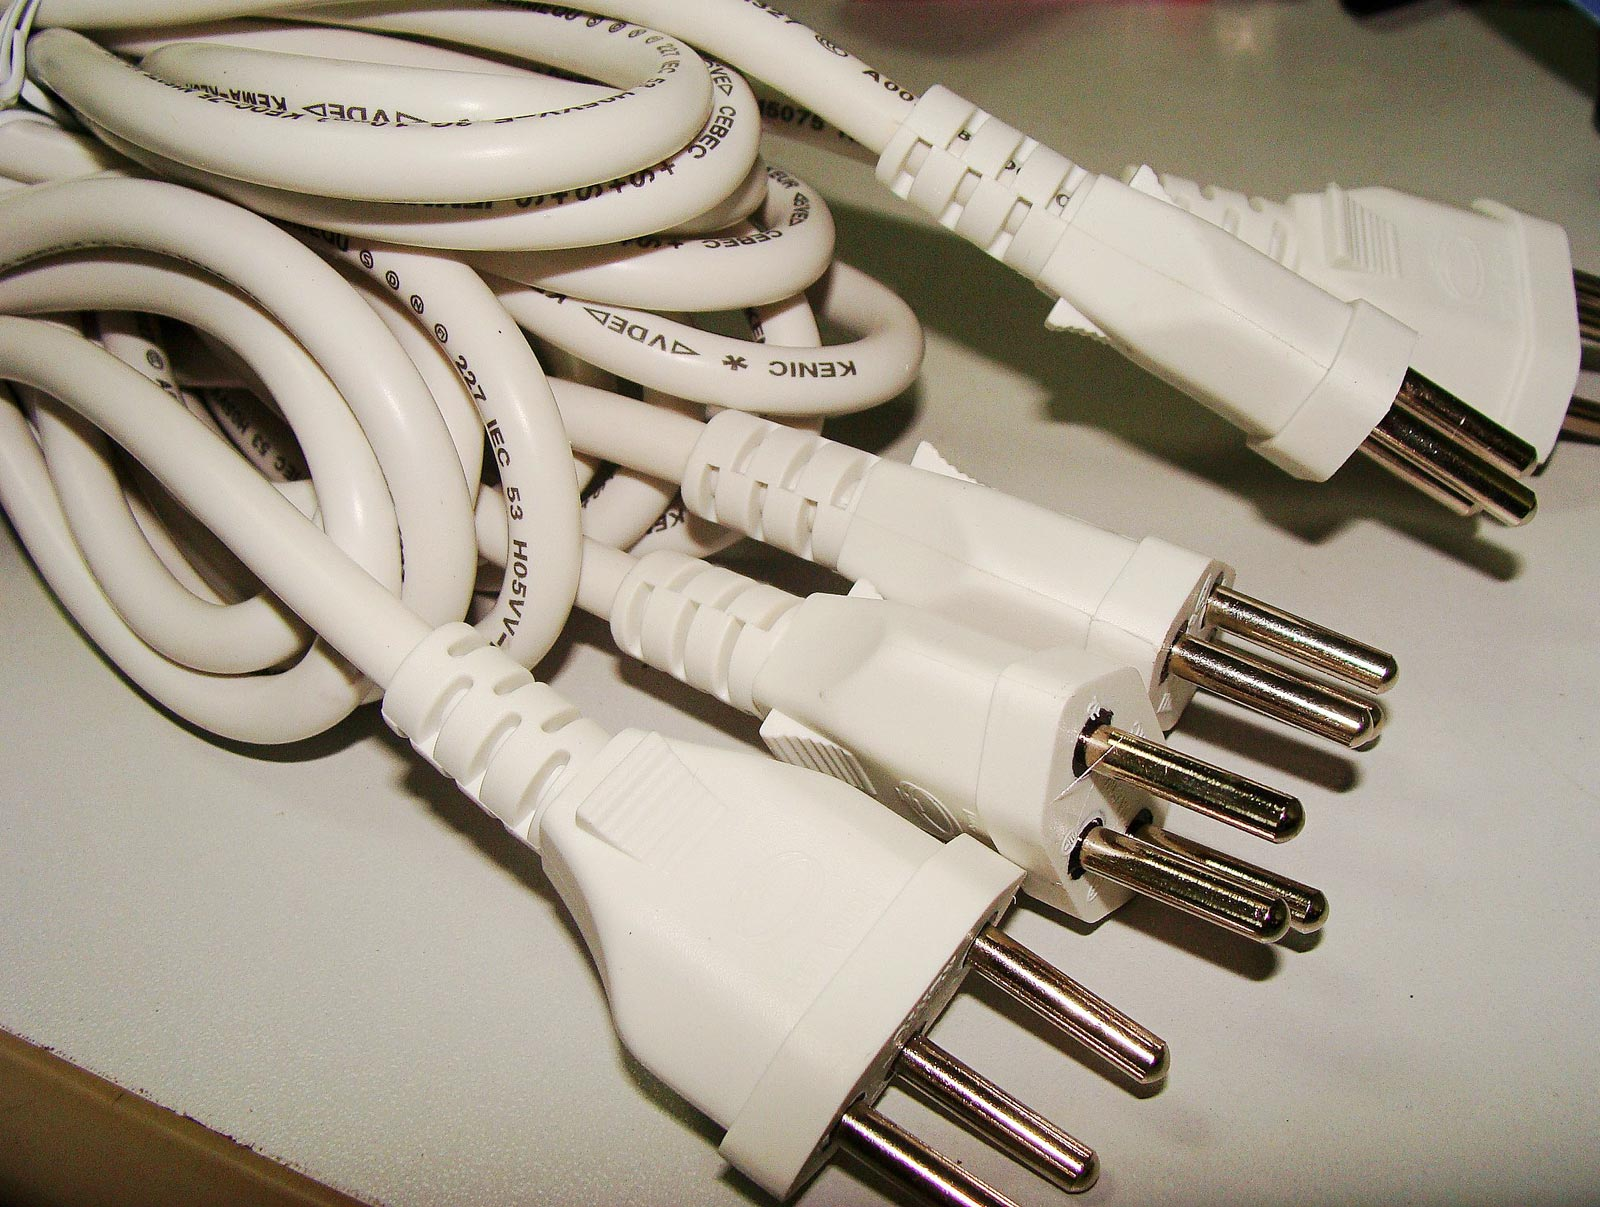 Swiss Sev 1011 Power Cord Flexible Cable Extension Socket Electrical Plug And Receptacle Wiring